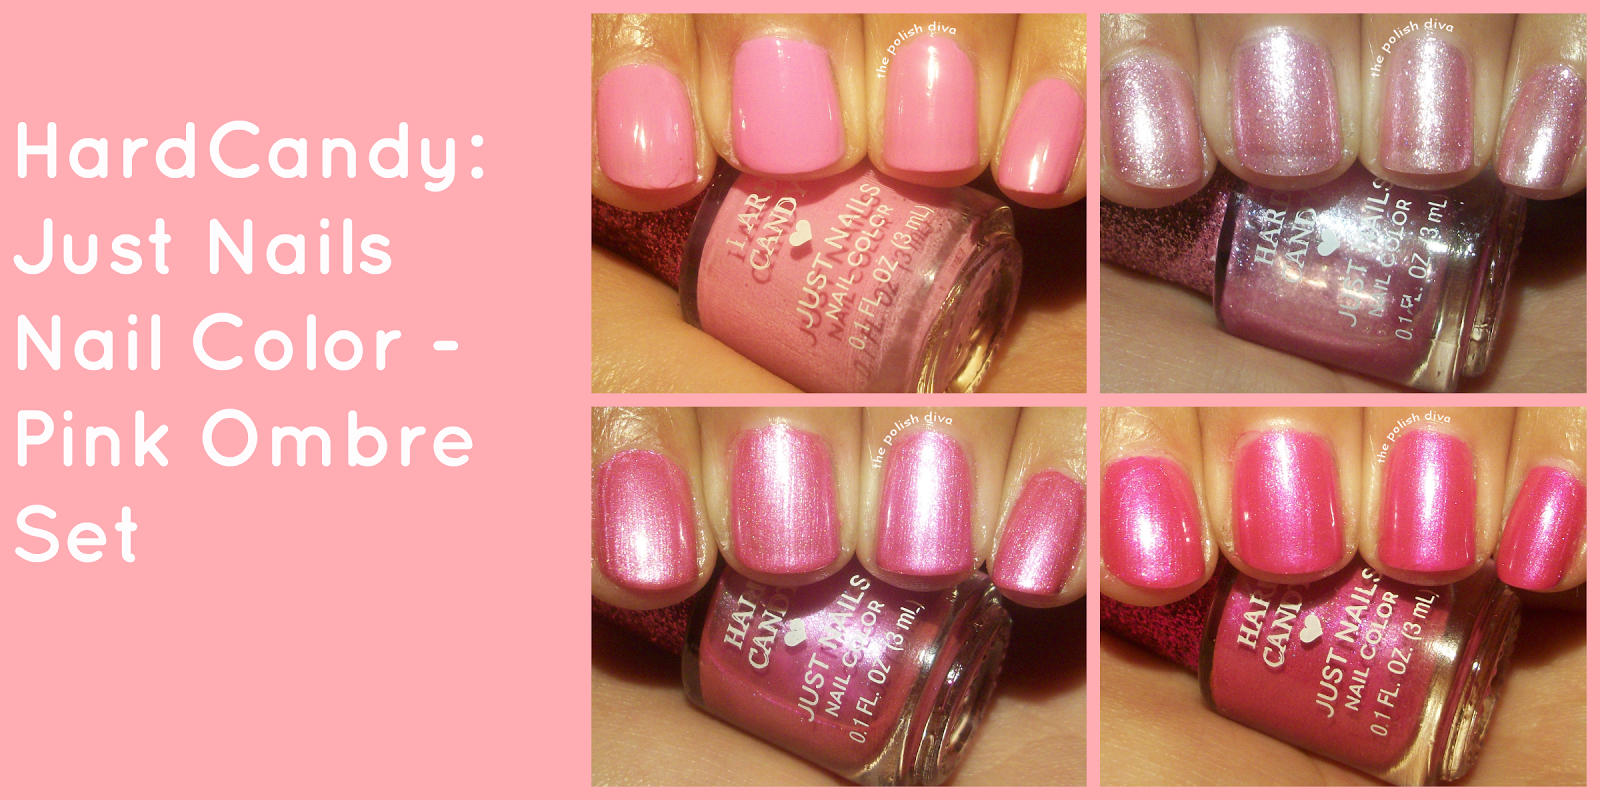 The Polish Diva: Hard Candy: Just Nails Nail Color - Pink Ombre Kit